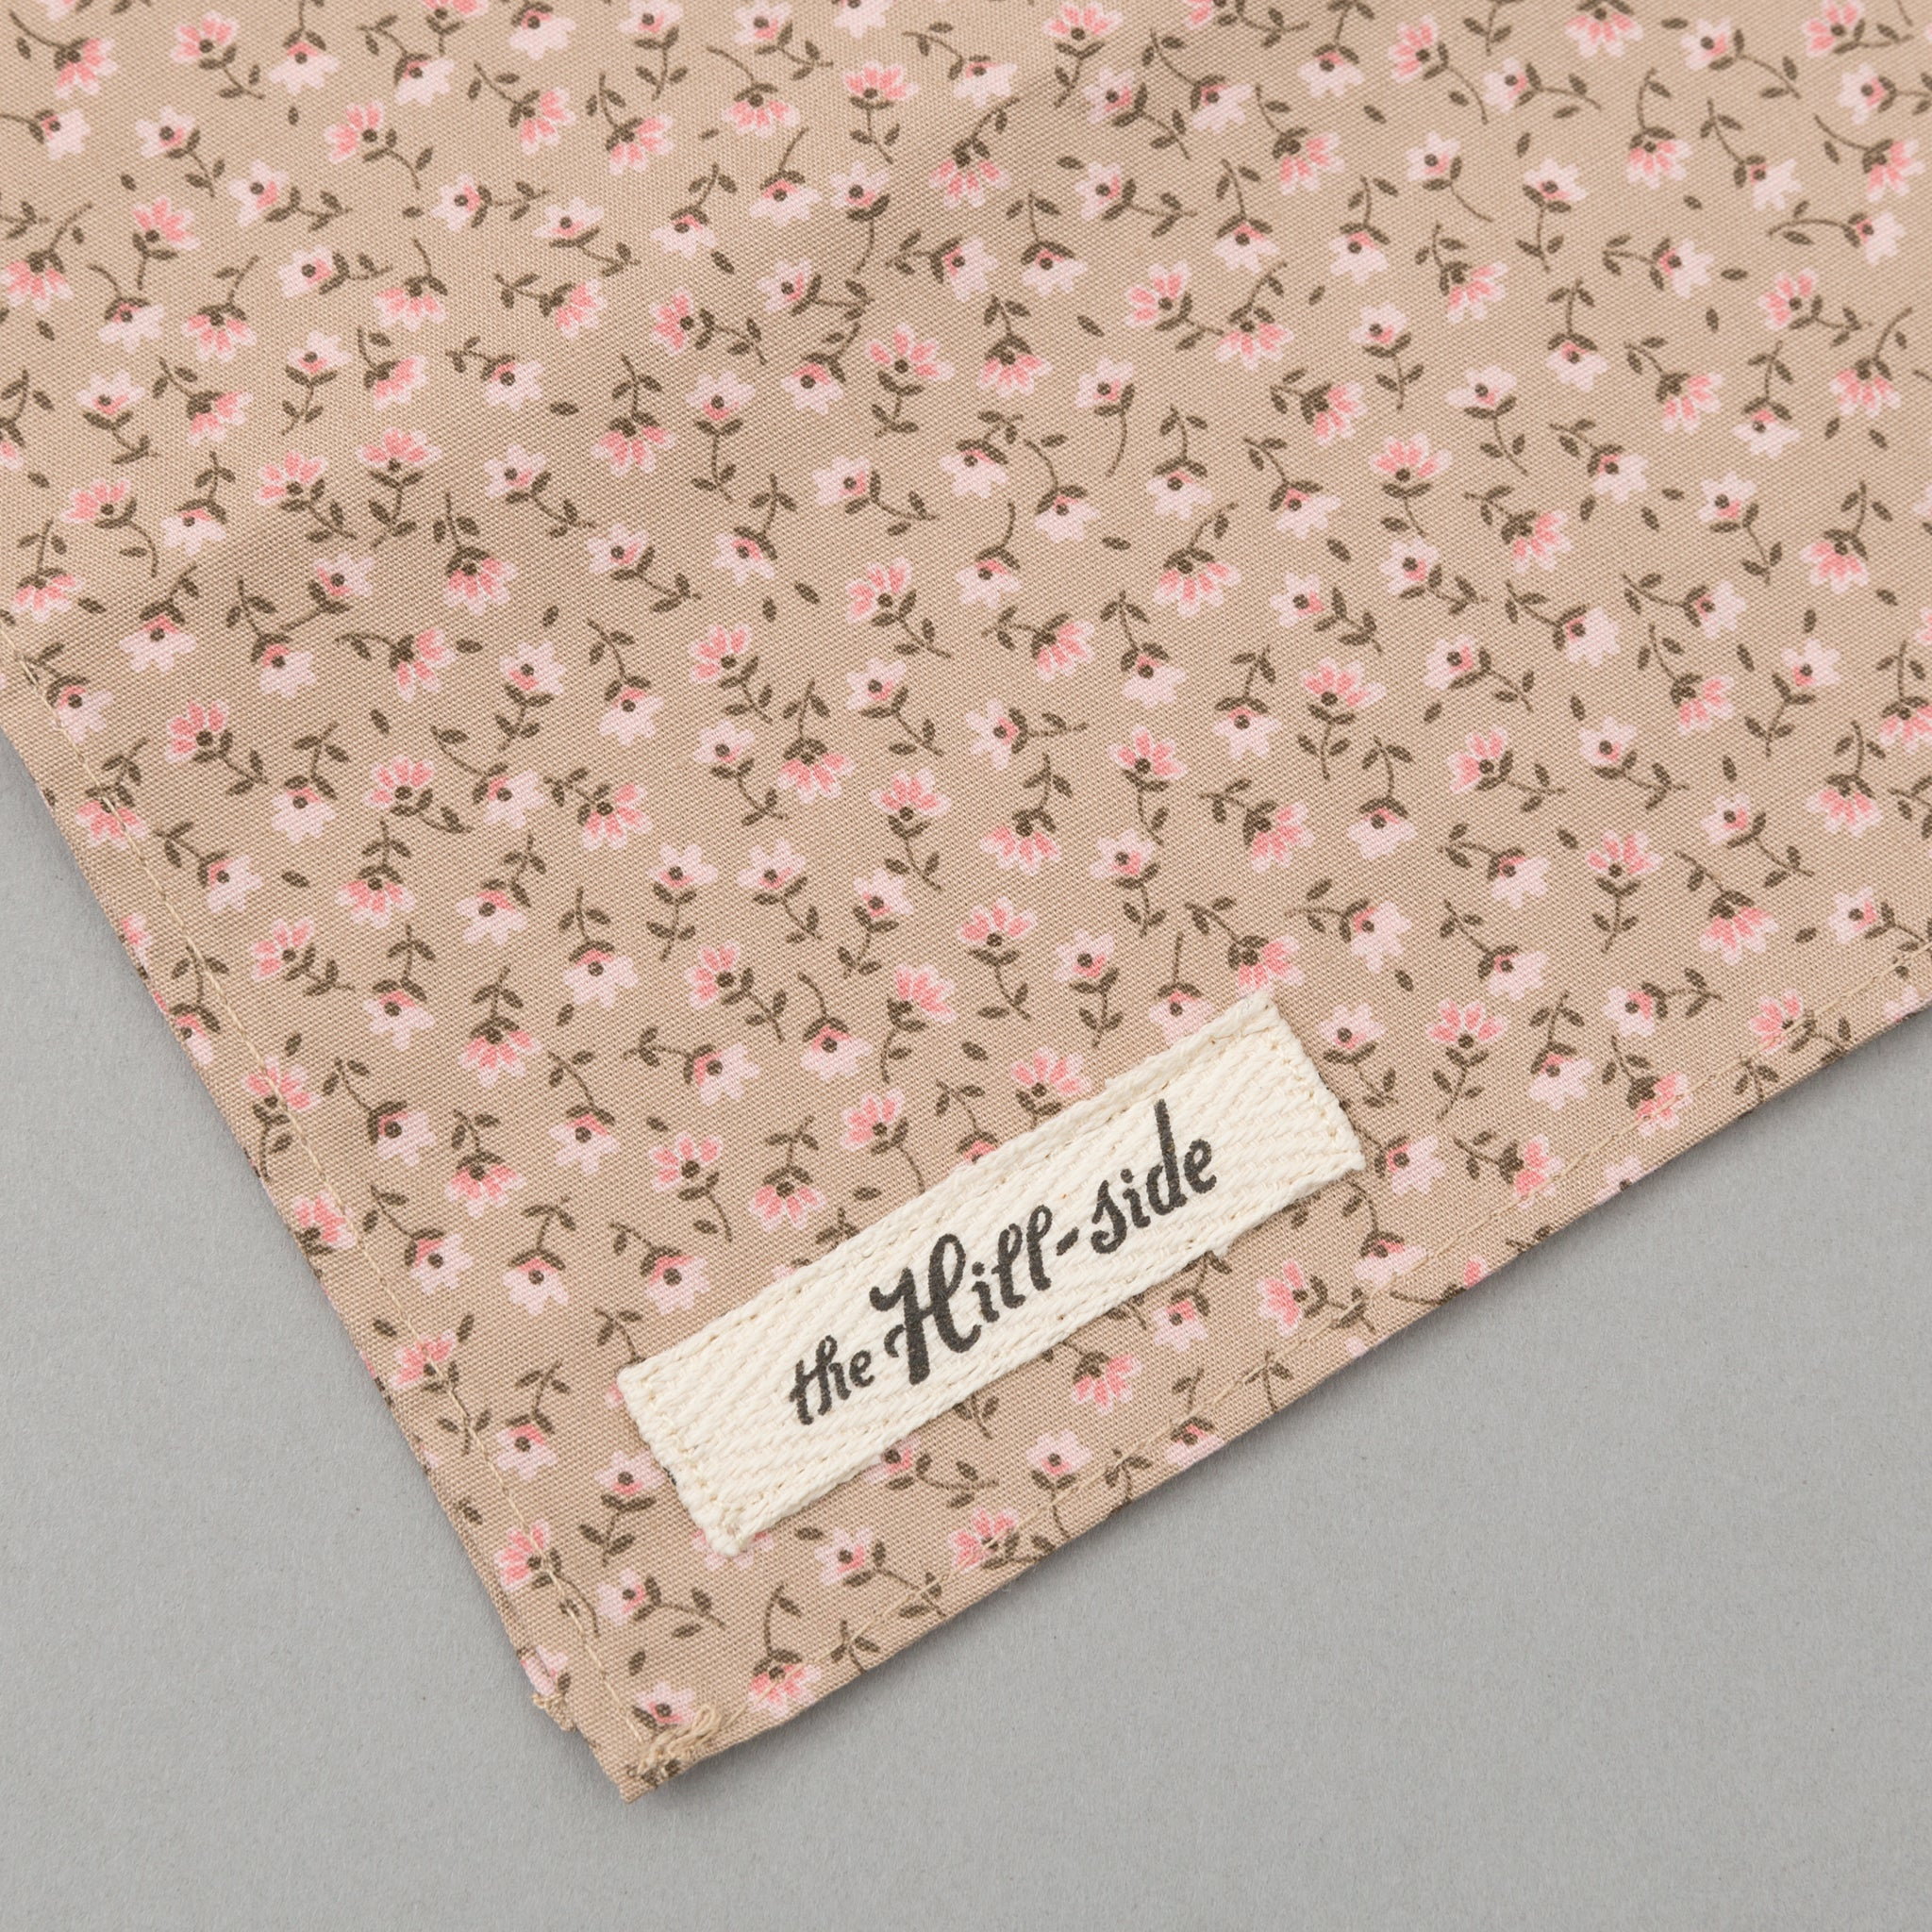 The Hill-Side - Miniature Calico Print Bandana, Tan - BA1-480